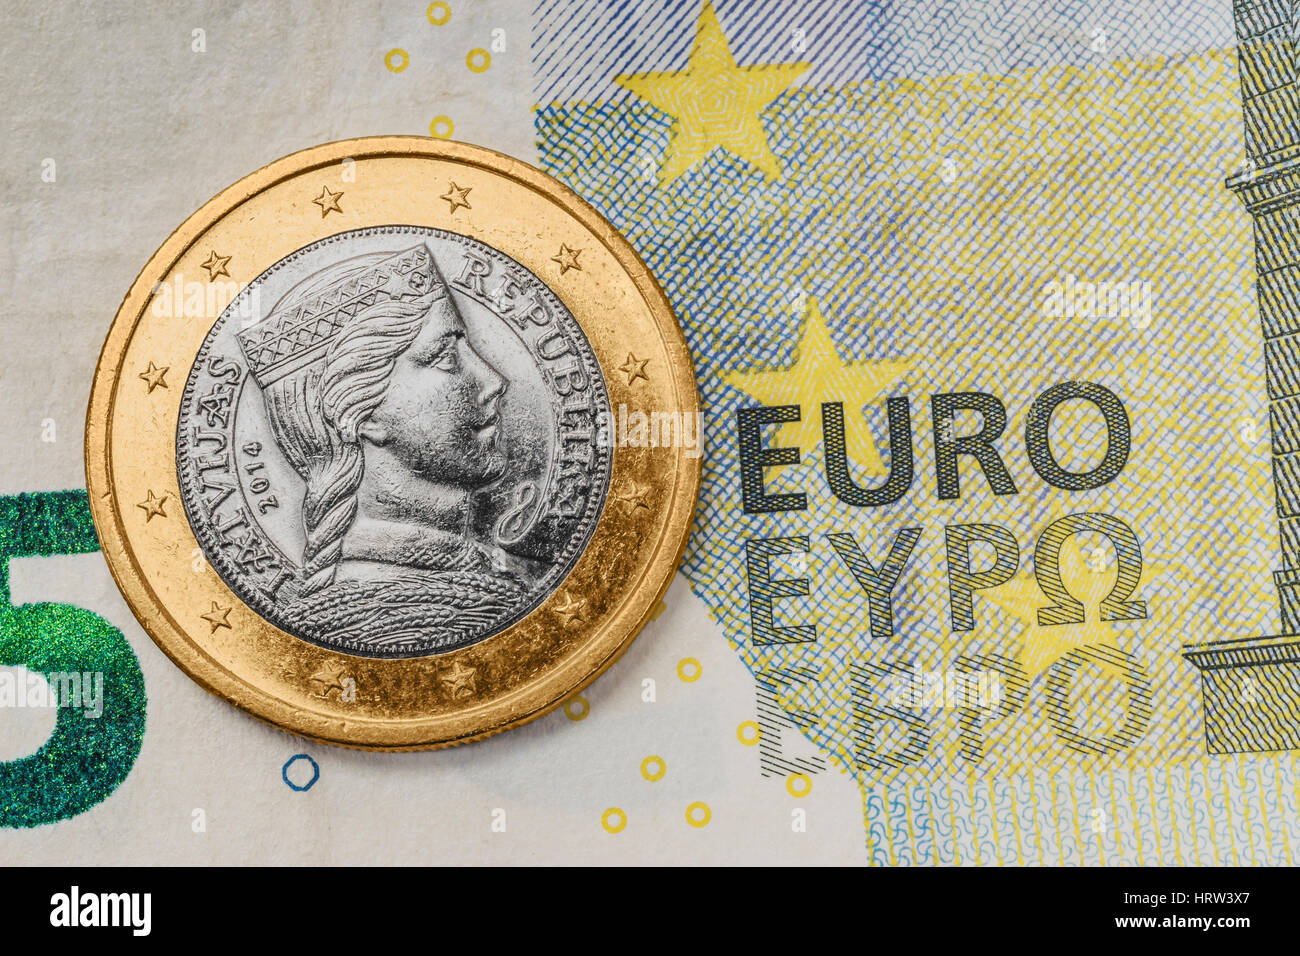 5 Euro Banknote Back Stockfotos 5 Euro Banknote Back Bilder Alamy